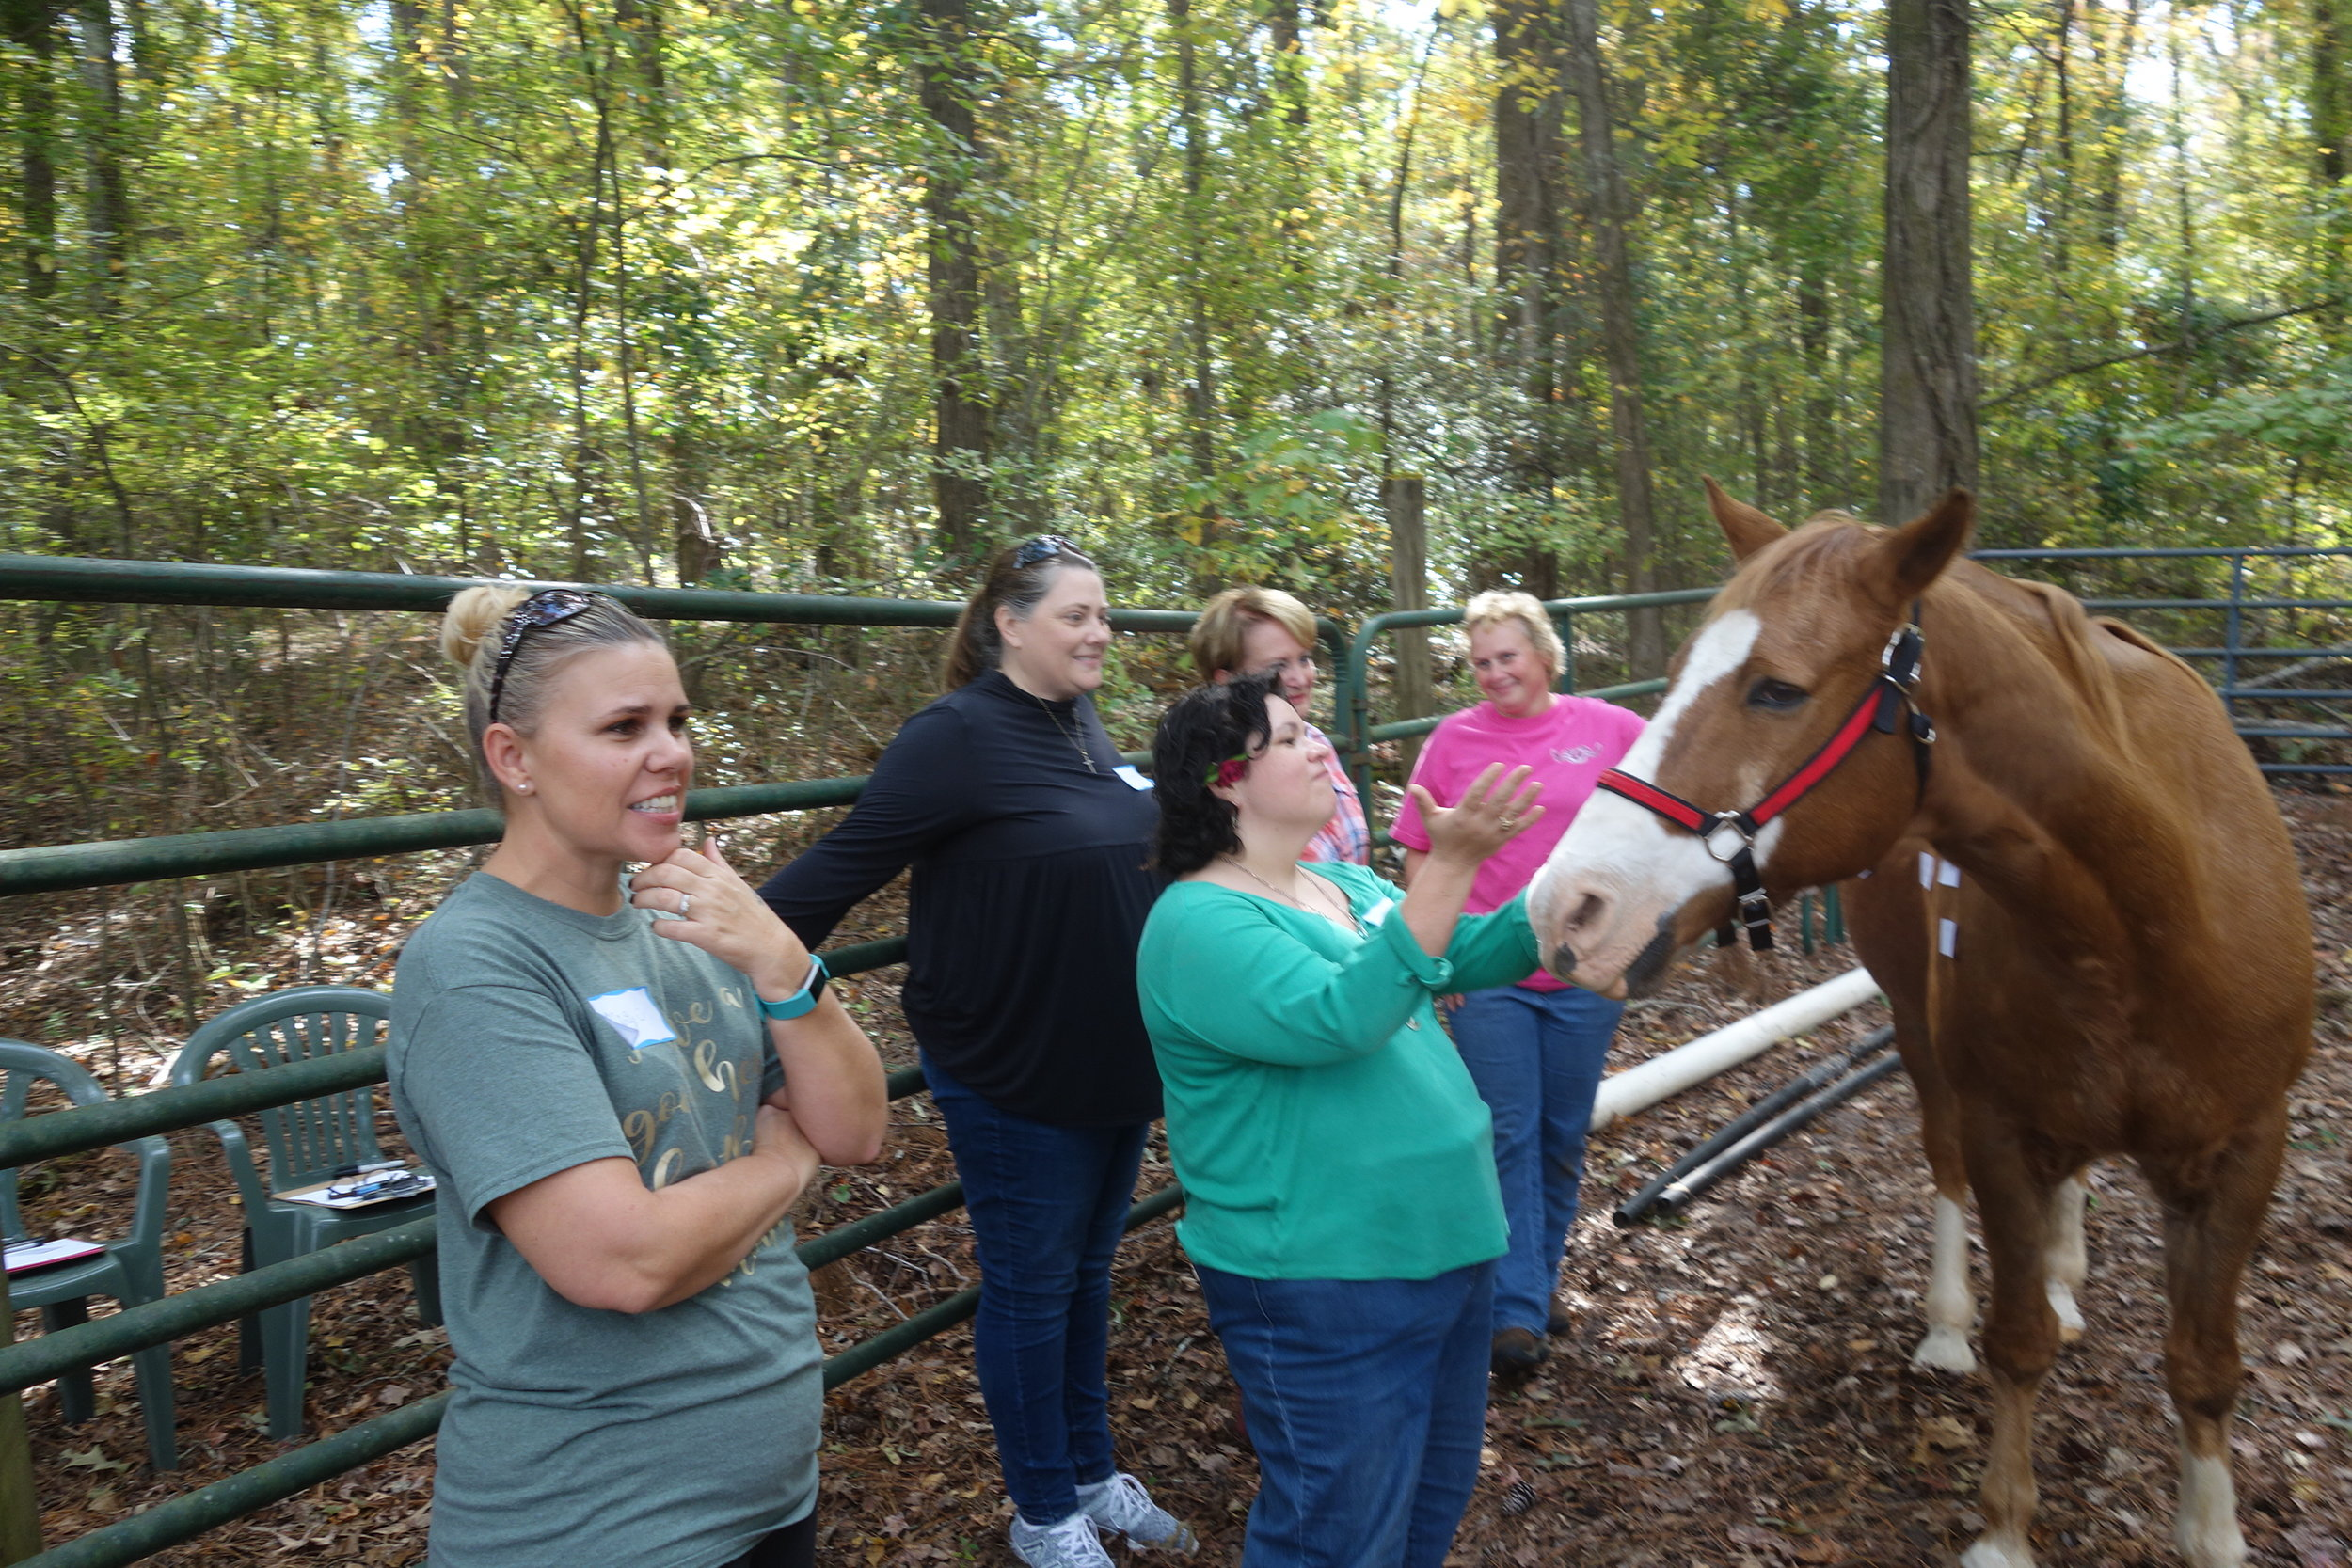 A successful Equine Encounter for Horse and Humans!